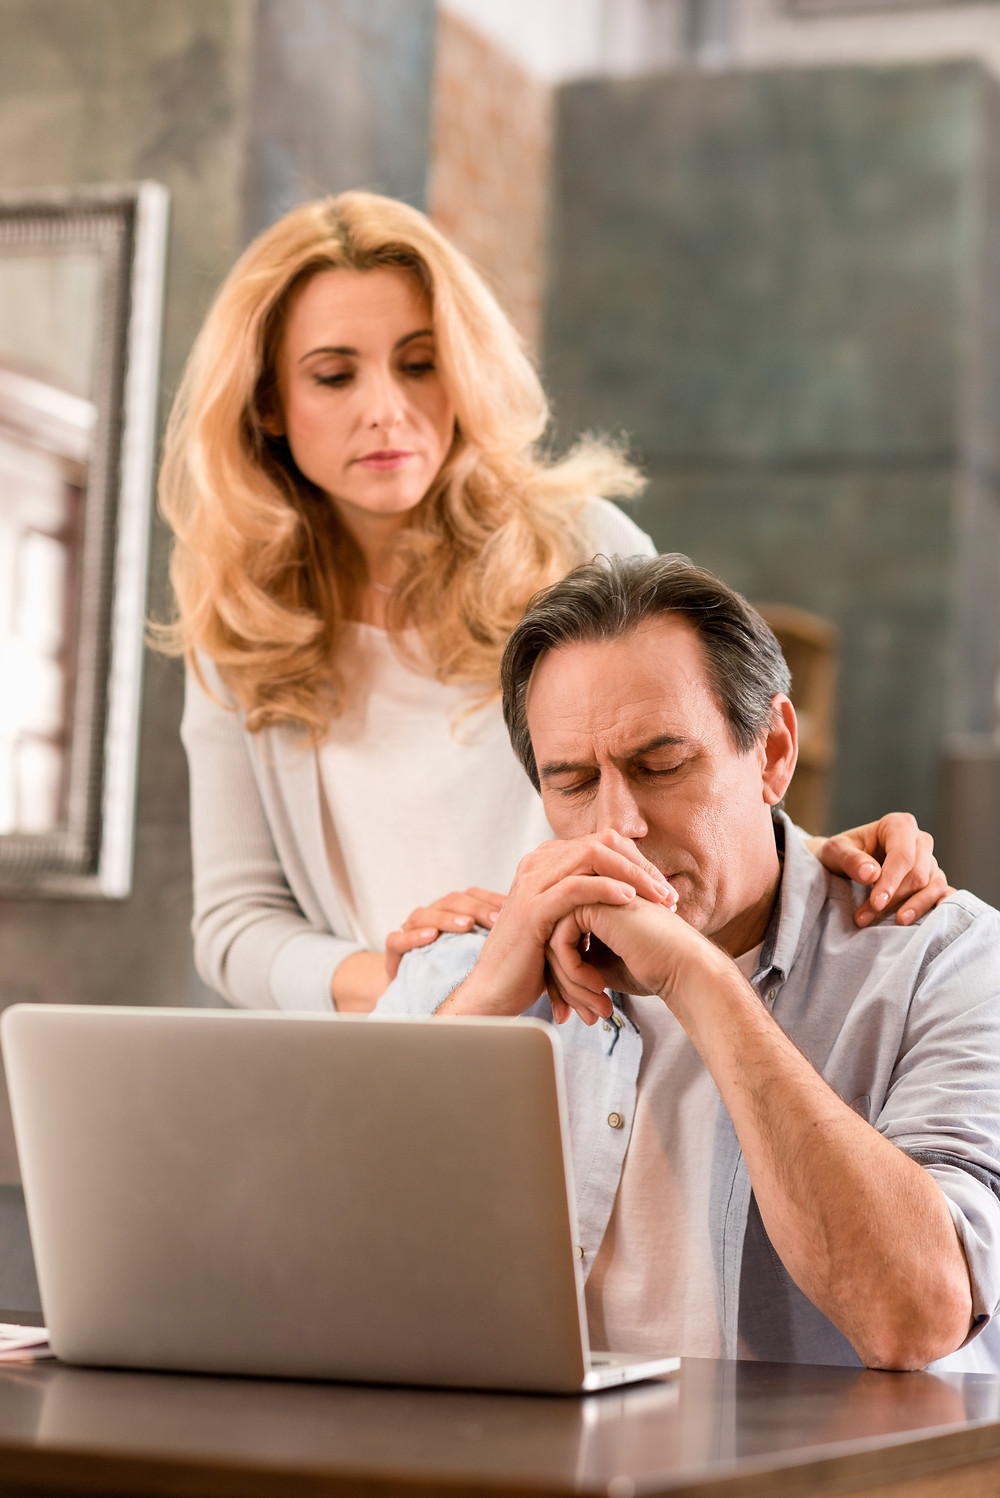 Anxious man in front of computer with woman behind trying to comfort him